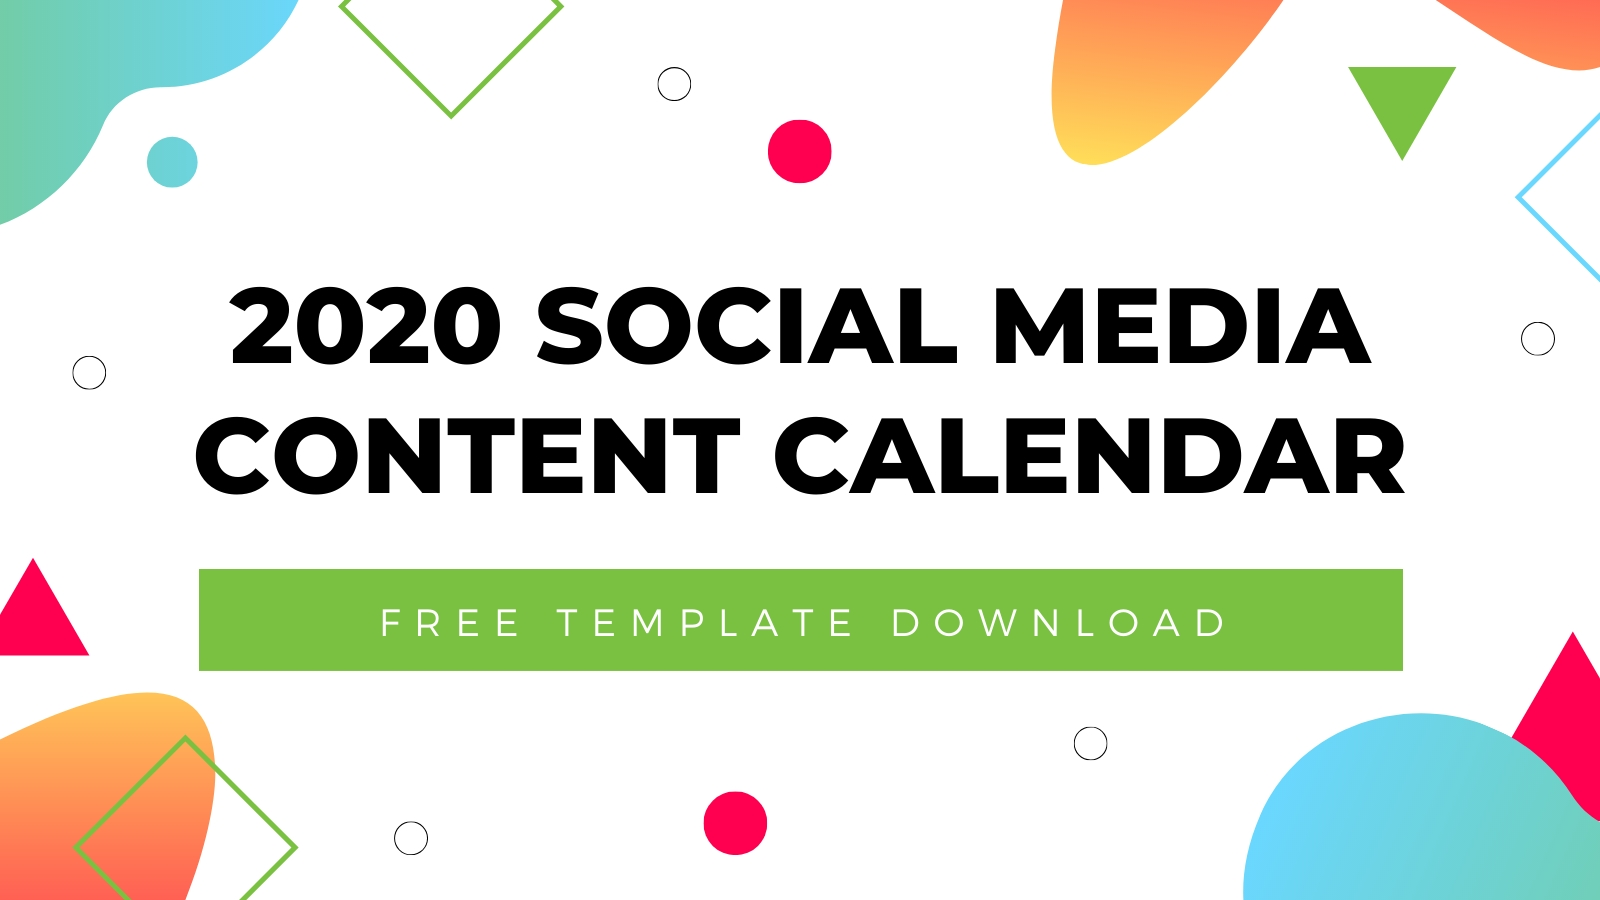 2020 Social Media Content Calendar Template | Free Download with regard to Special Days In The Business Calendar 2020